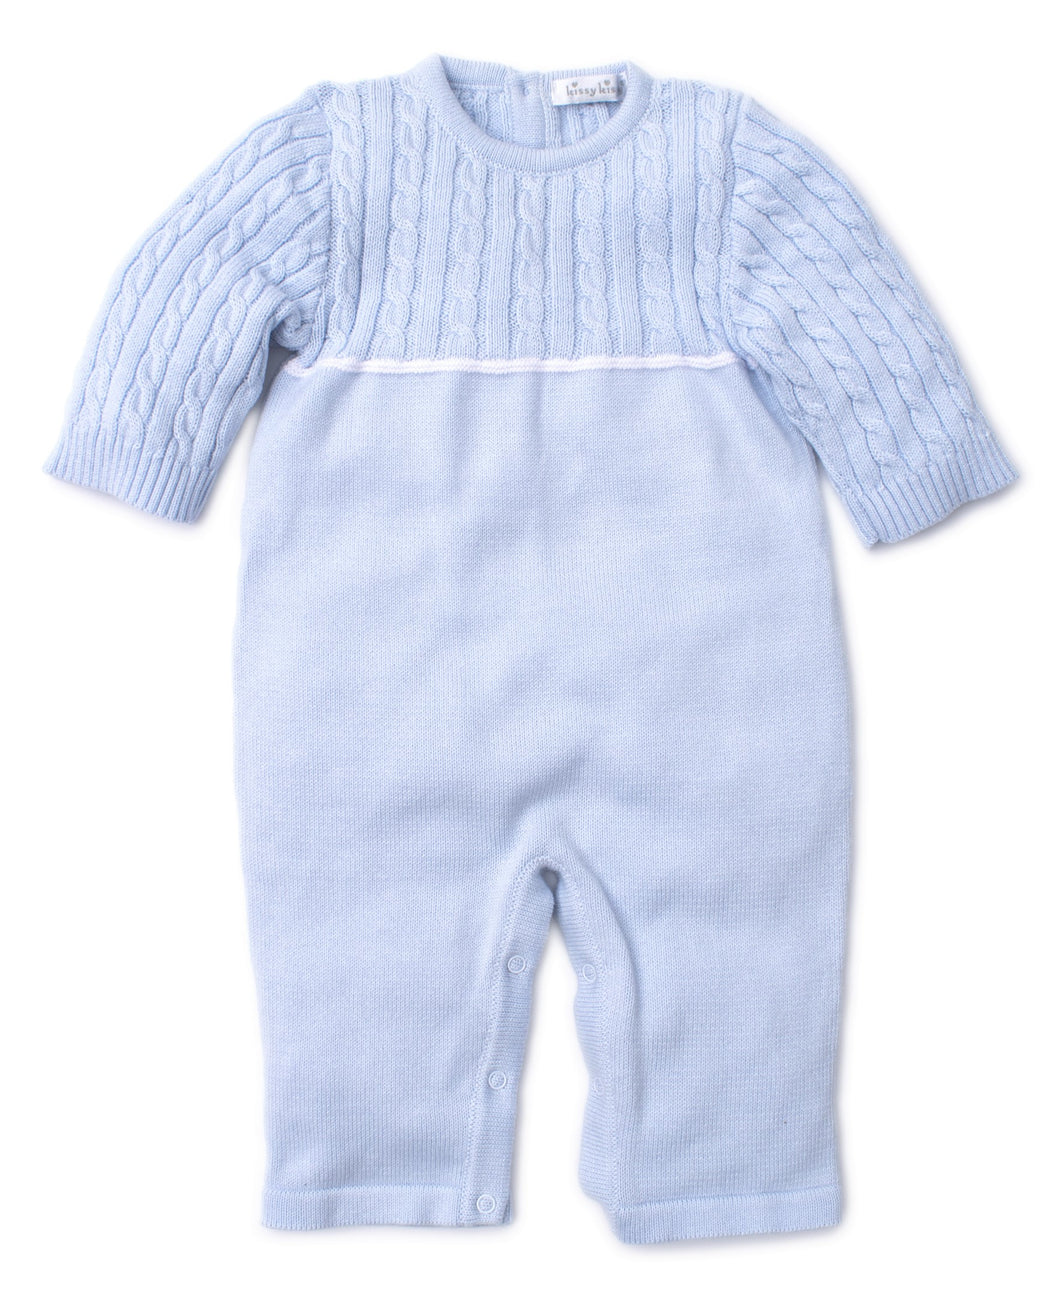 Cozy Cable Knit Playsuit